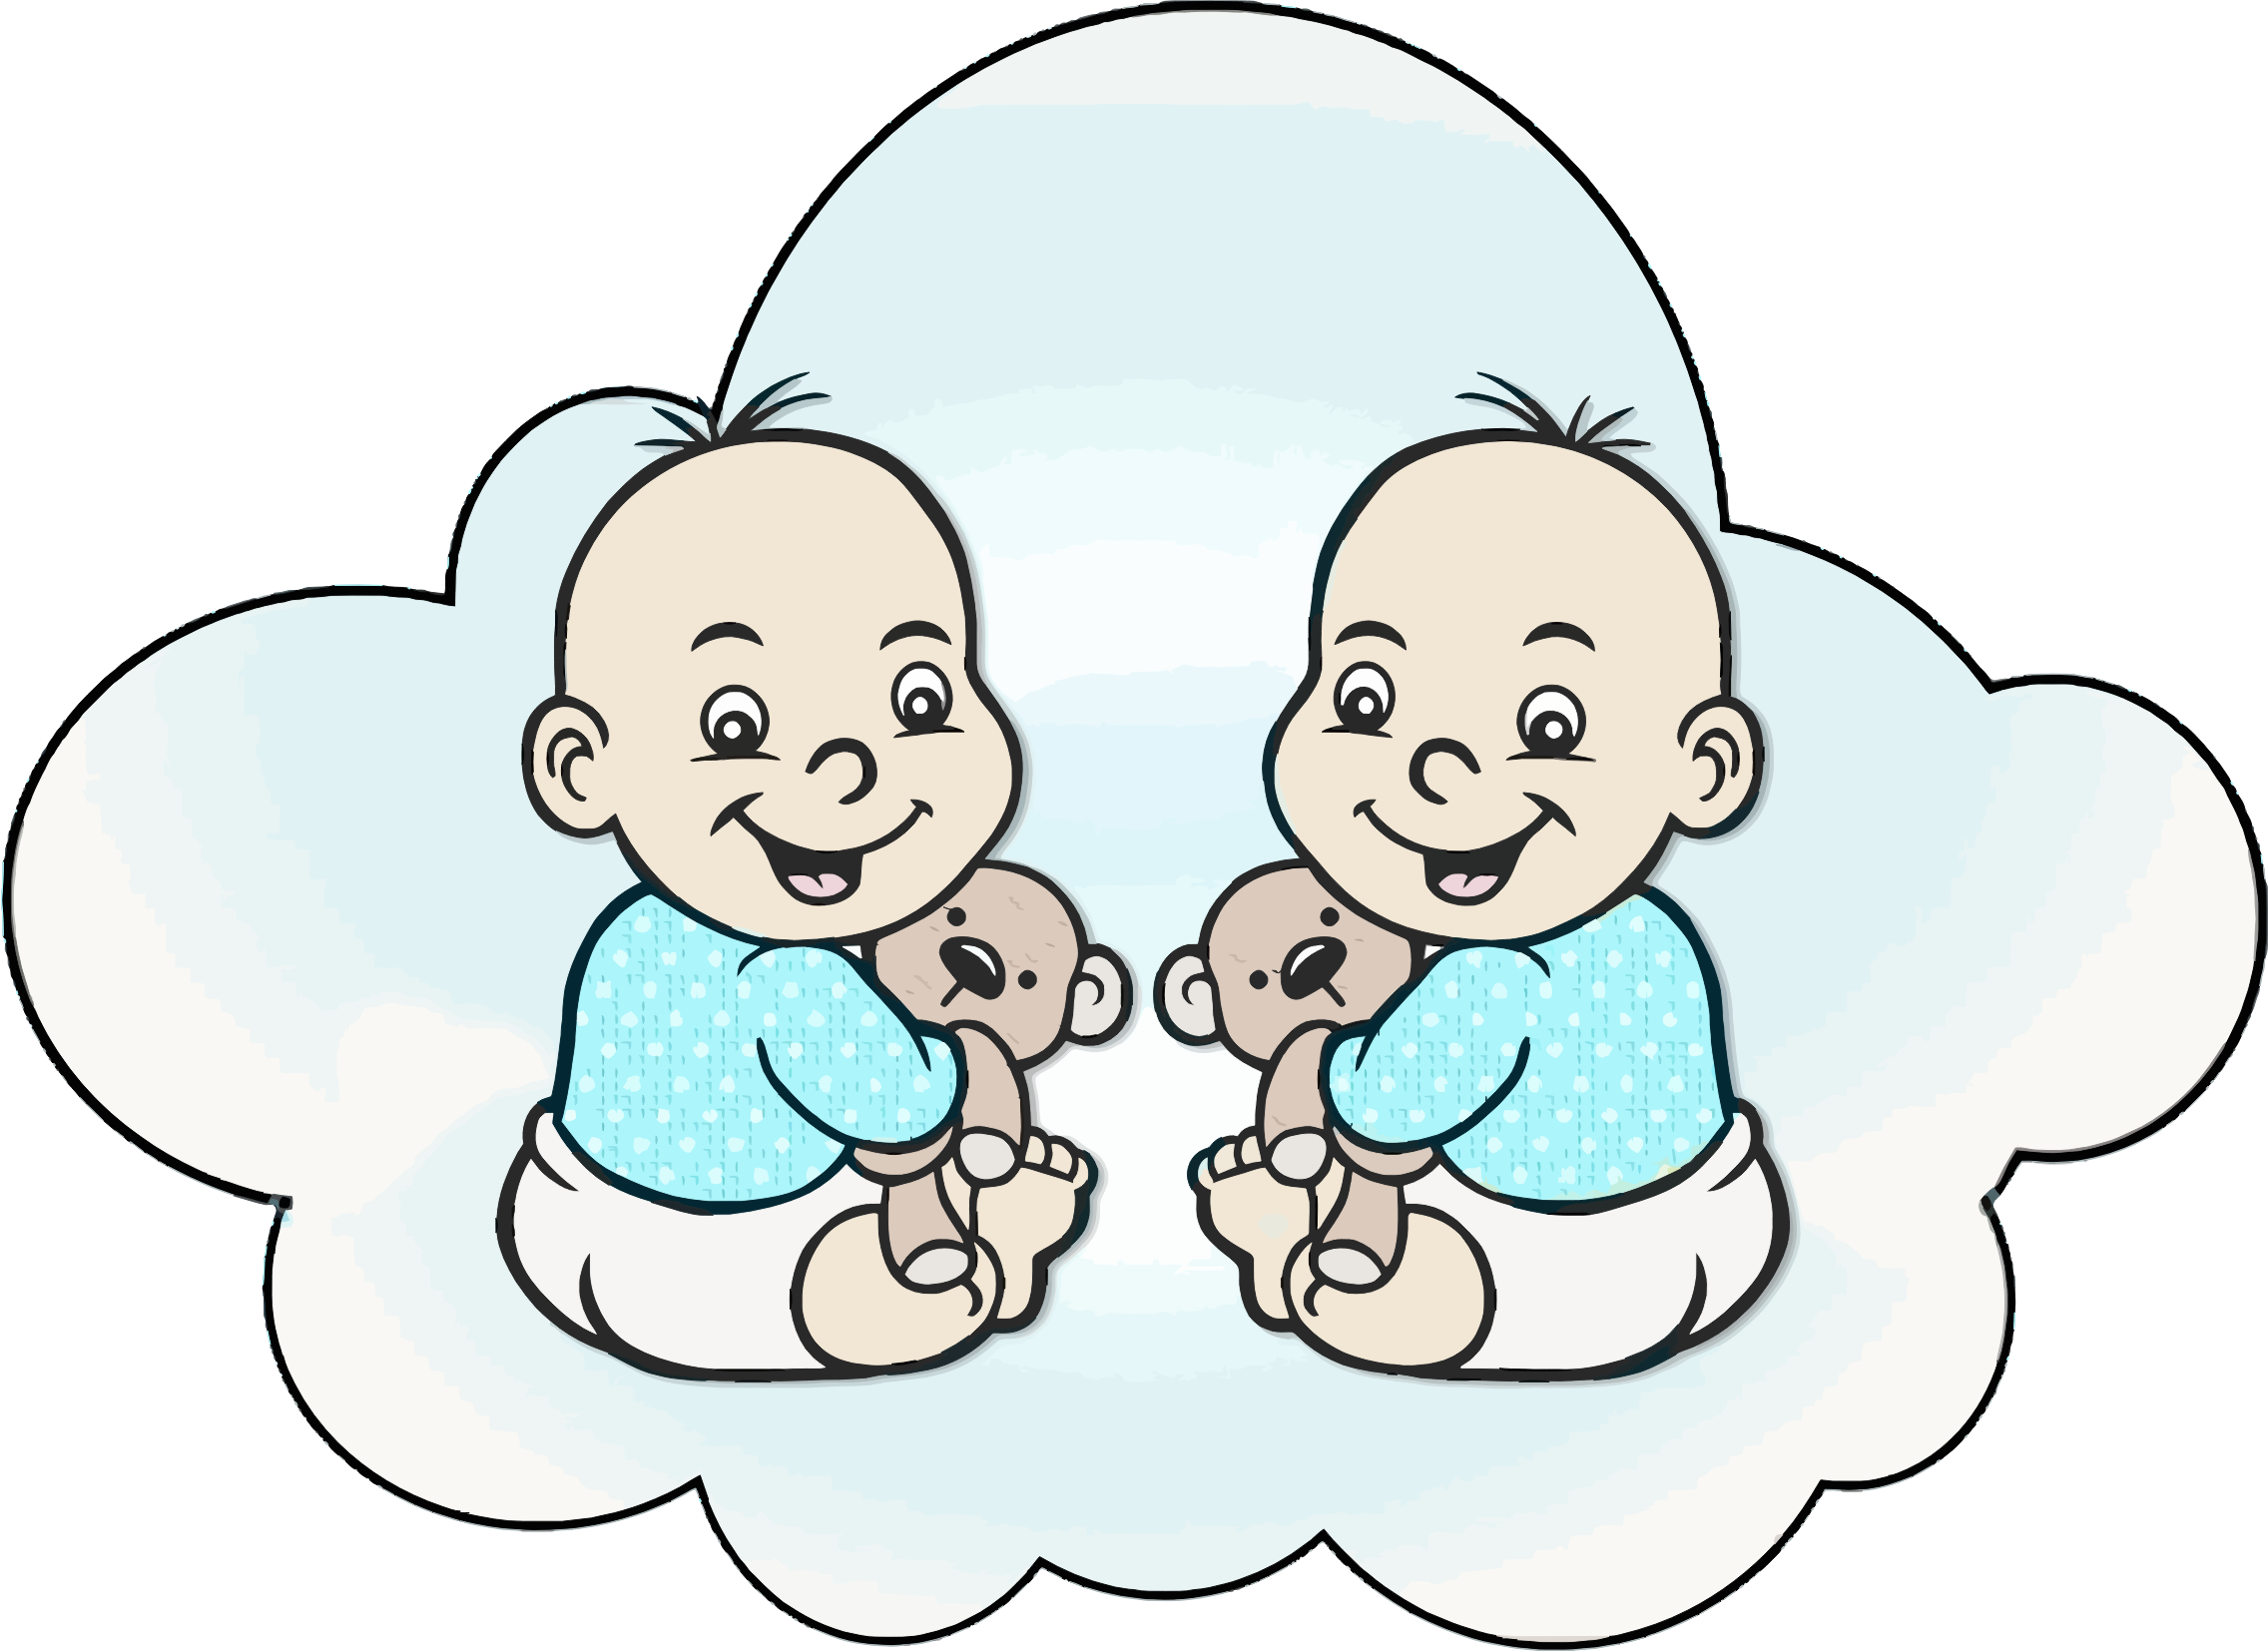 Cloud Babies by GDJ